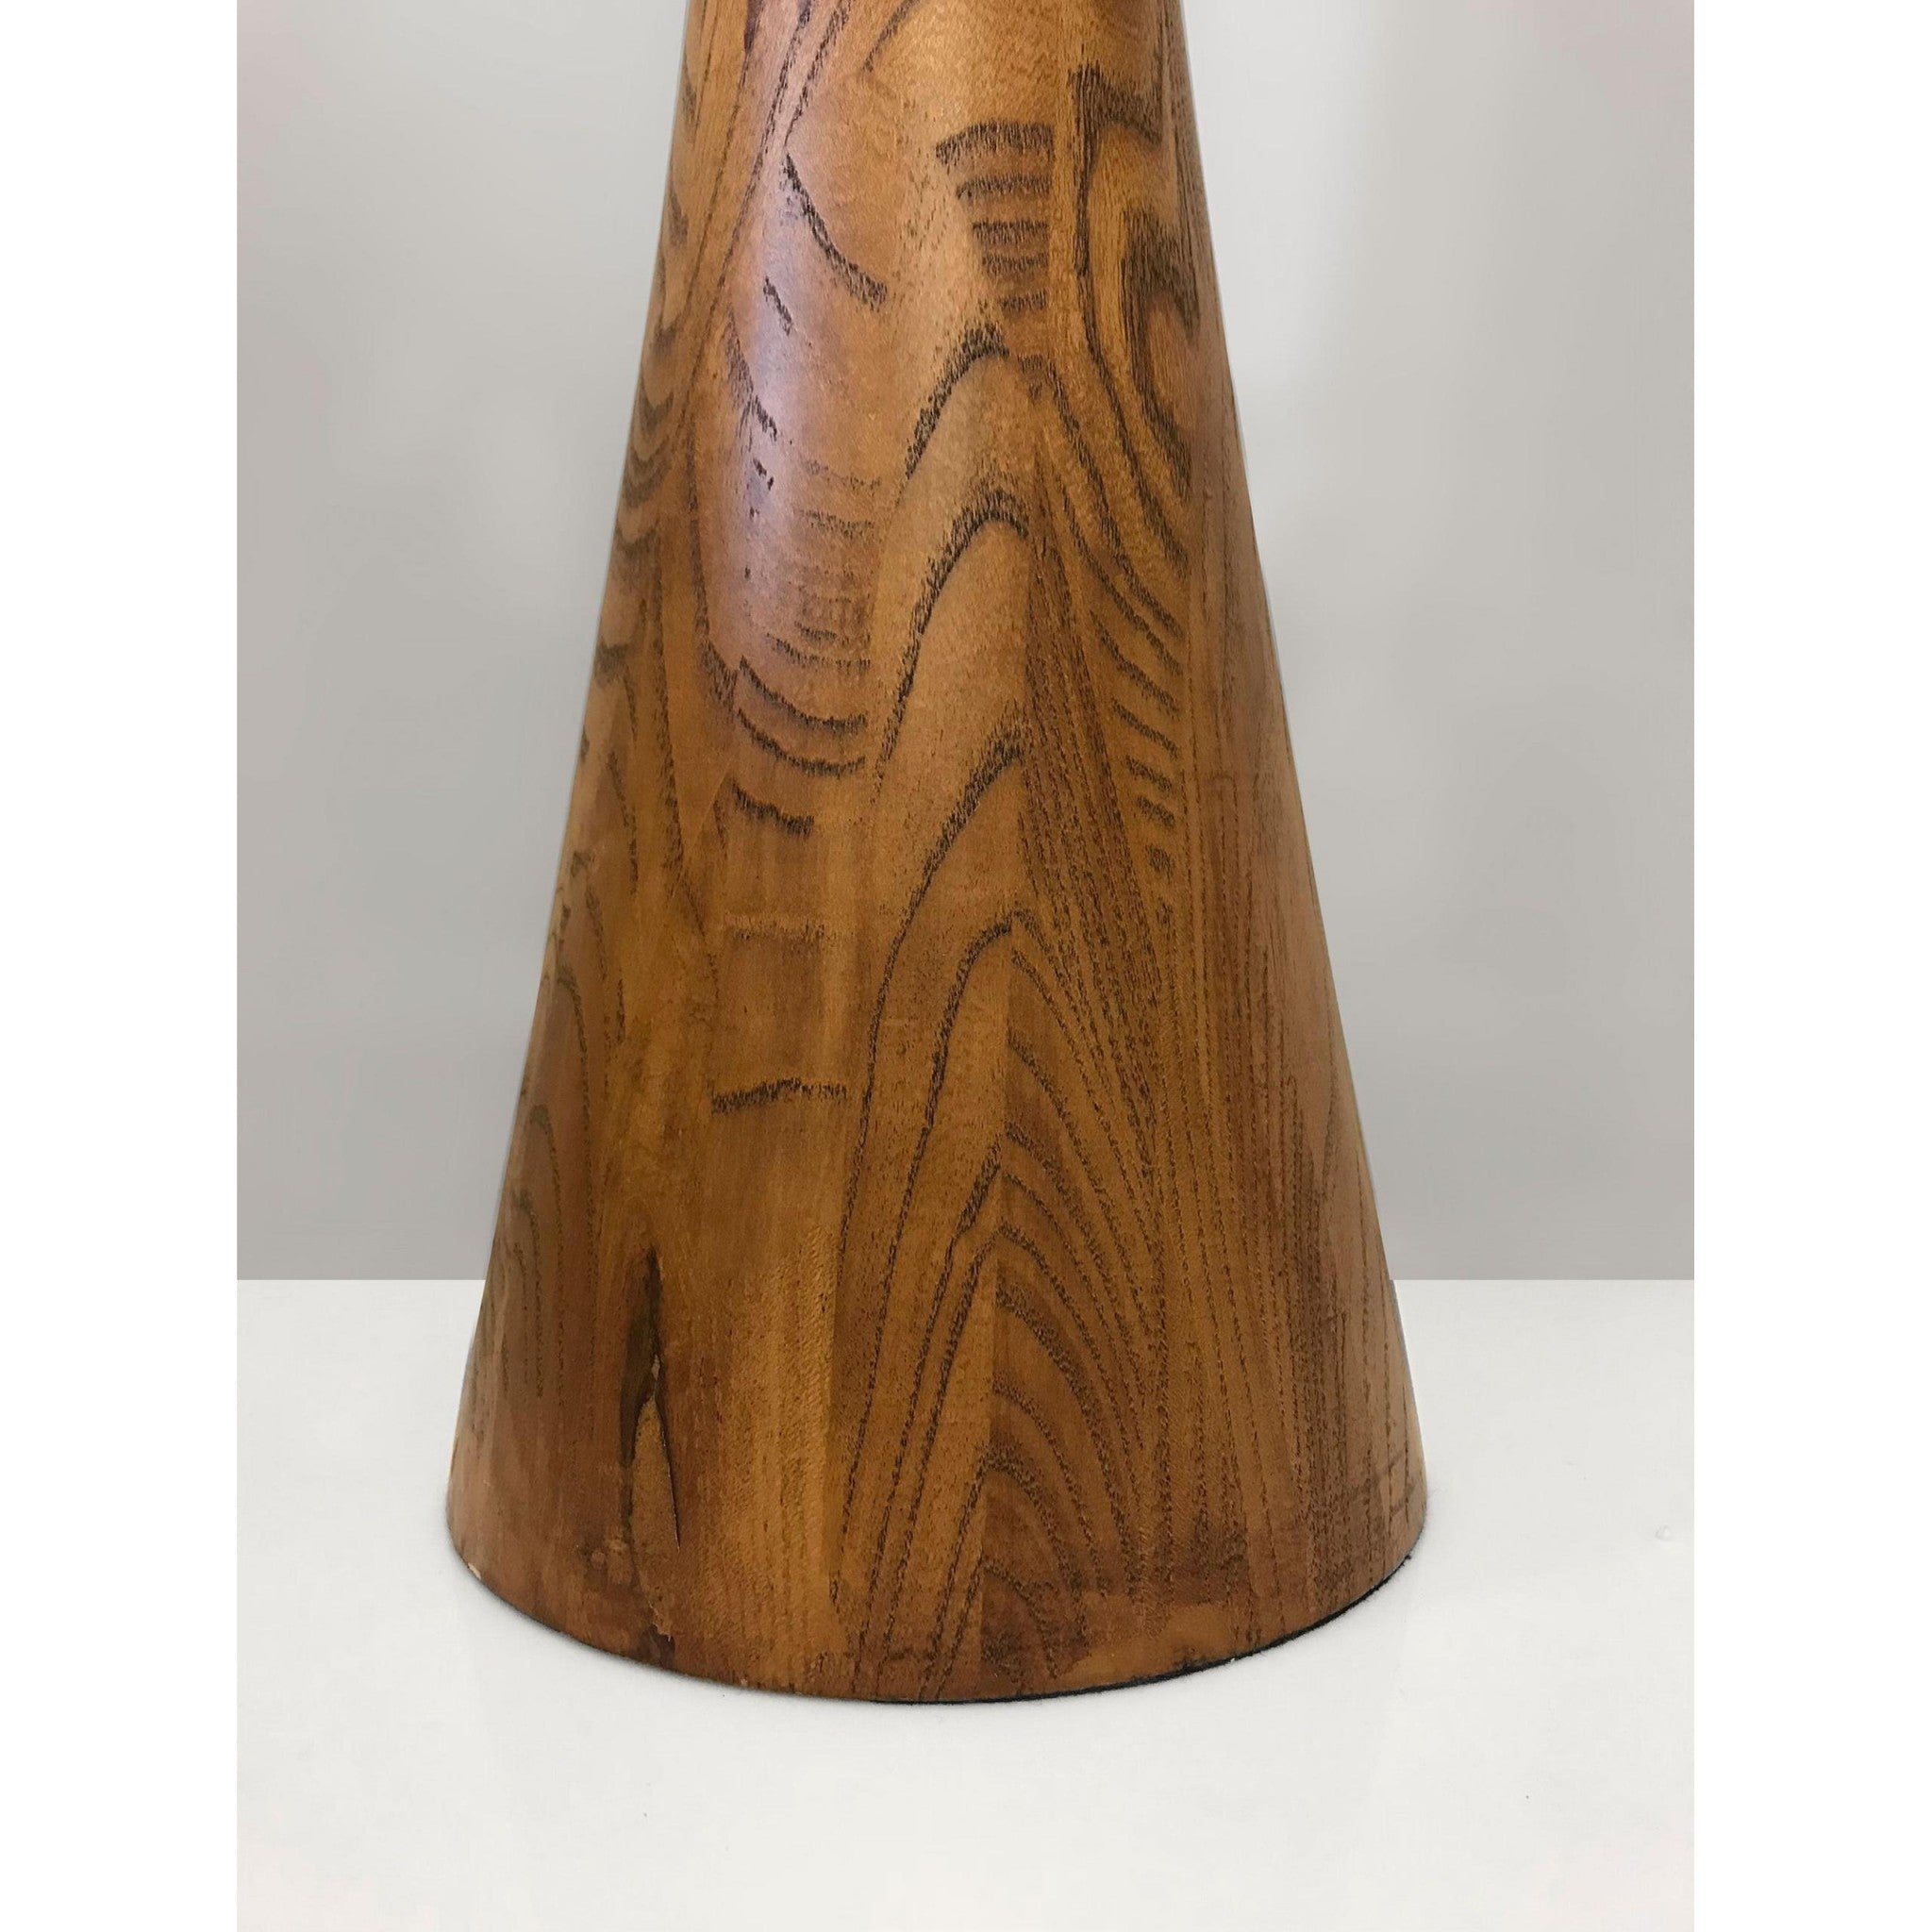 Sleek Walnut Wood Finished Floor Lamp with Frosted Glass Shade